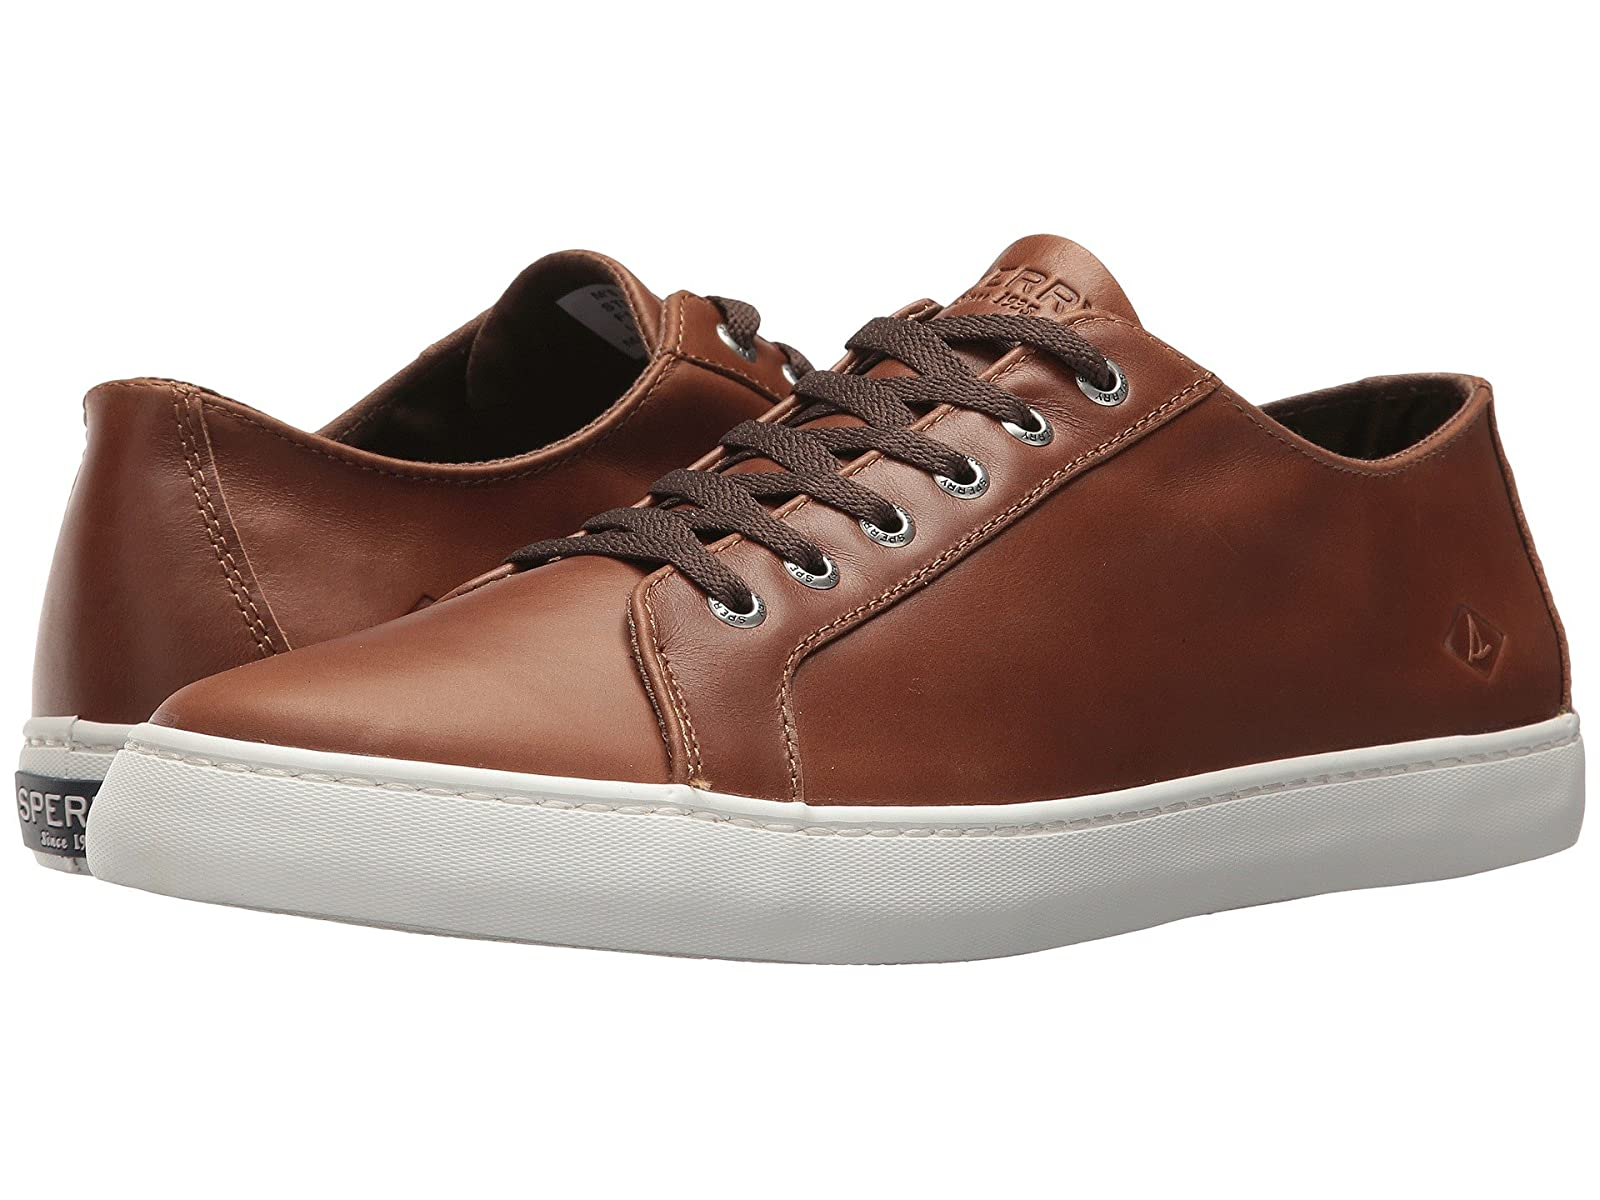 Sperry Cutter LTT LeatherCheap and distinctive eye-catching shoes